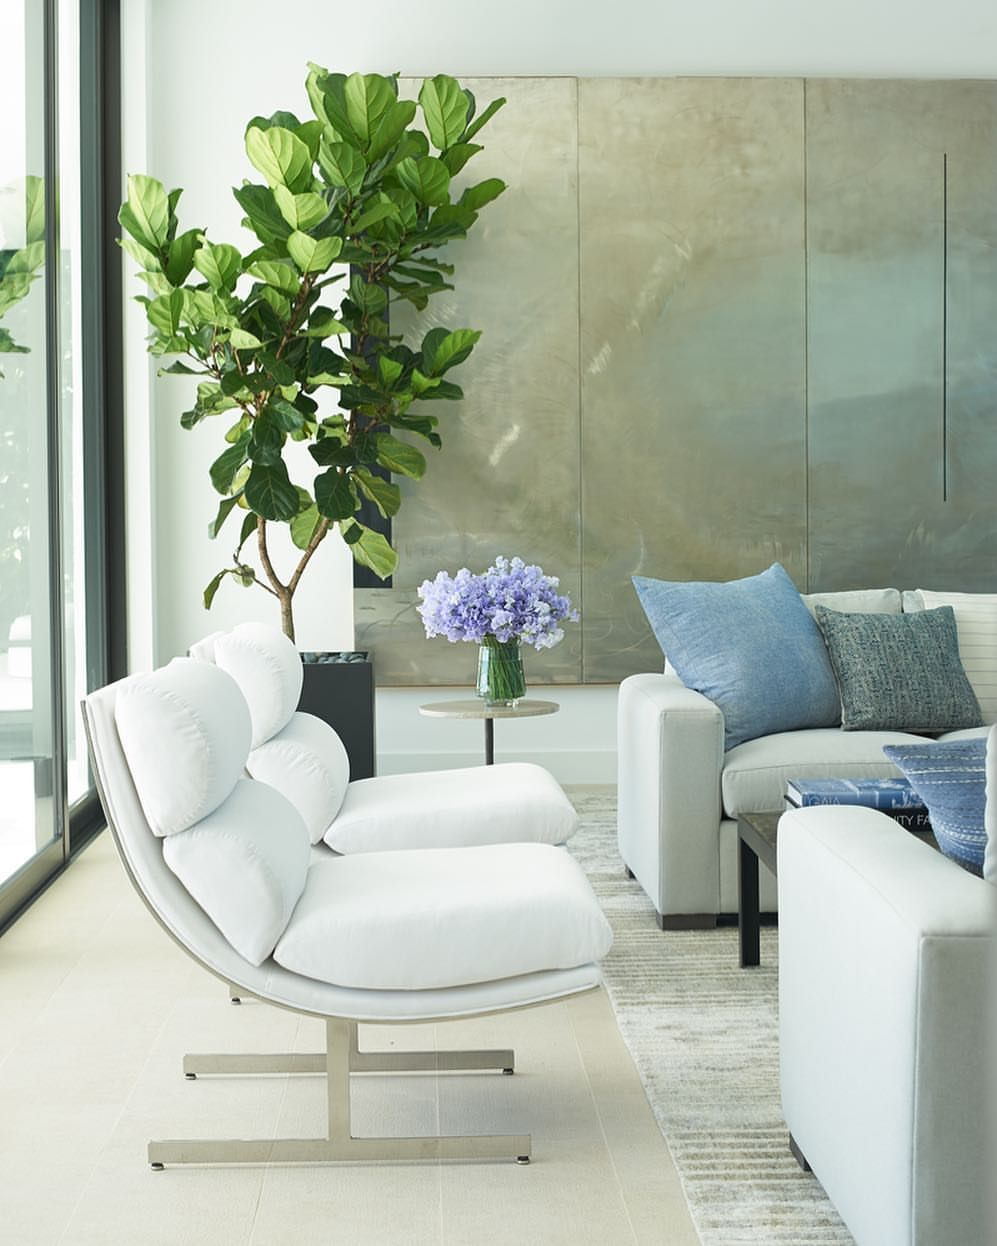 A Designer S Own Home Is Typically Last On The Long List Of